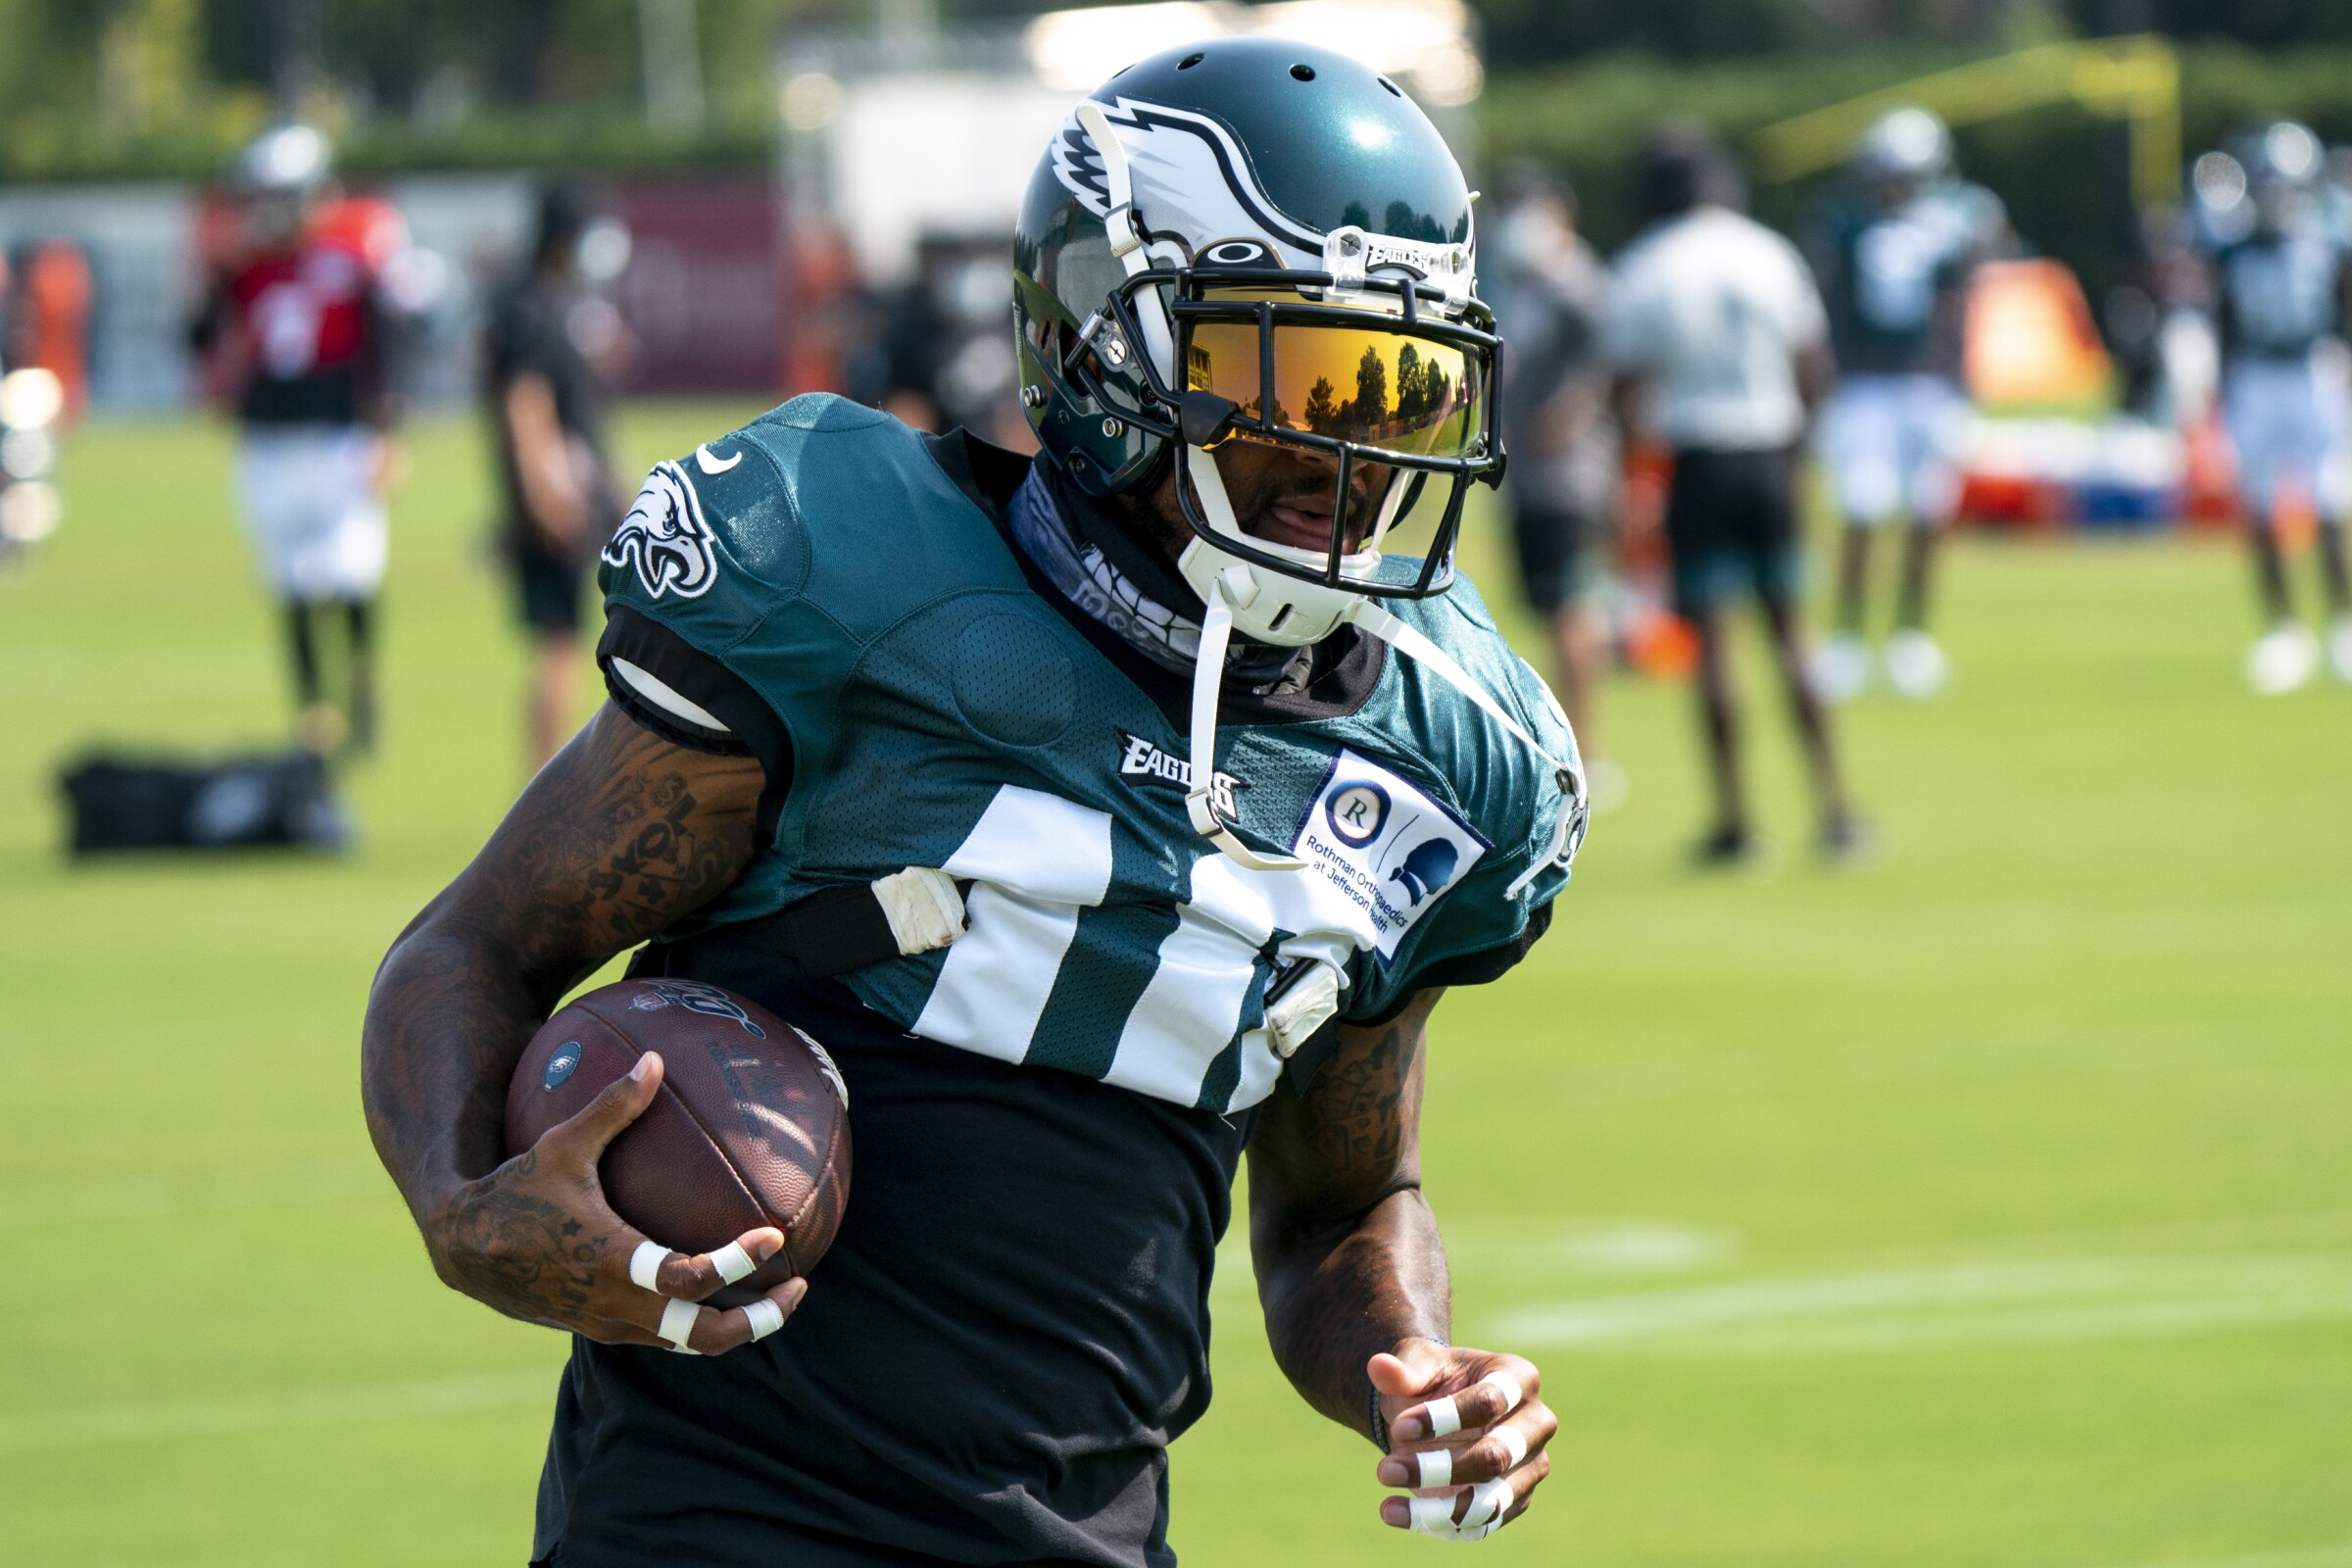 Philadelphia Eagles wide receiver DeSean Jackson in action during an NFL football practice.